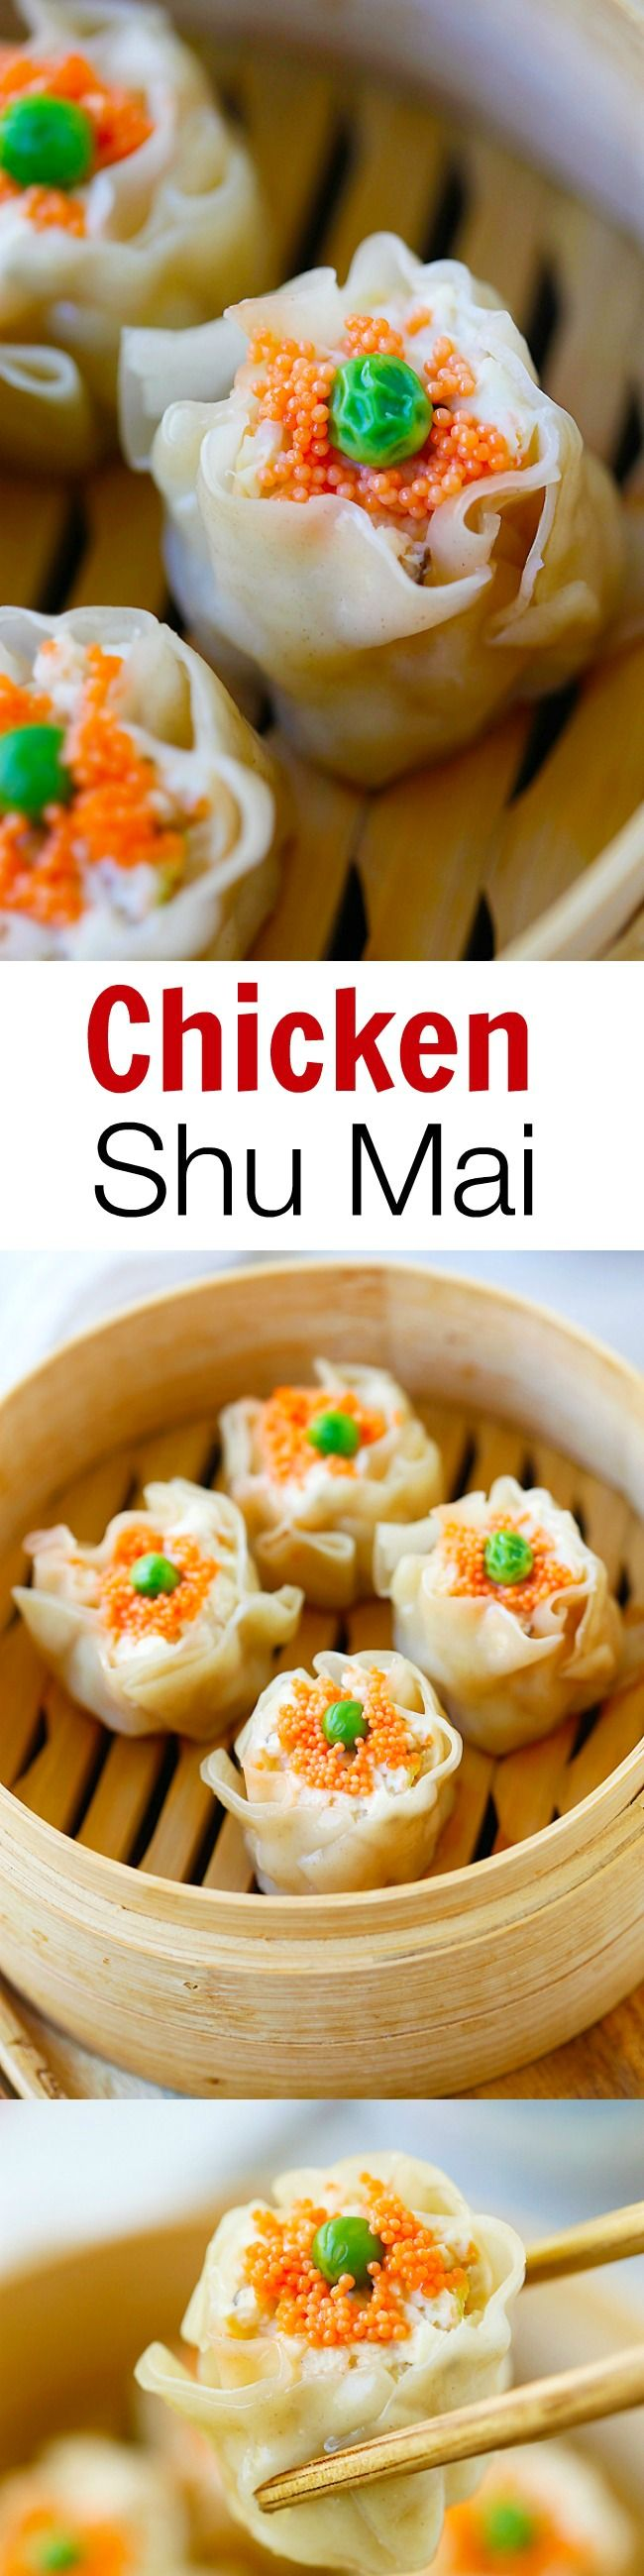 Chicken Shu Mai (Siu Mai) is a popular dim sum item. Learn how to make chicken shu mai with this quick and amazing recipe that is better than Chinatown!! | rasamalaysia.com #appetizer